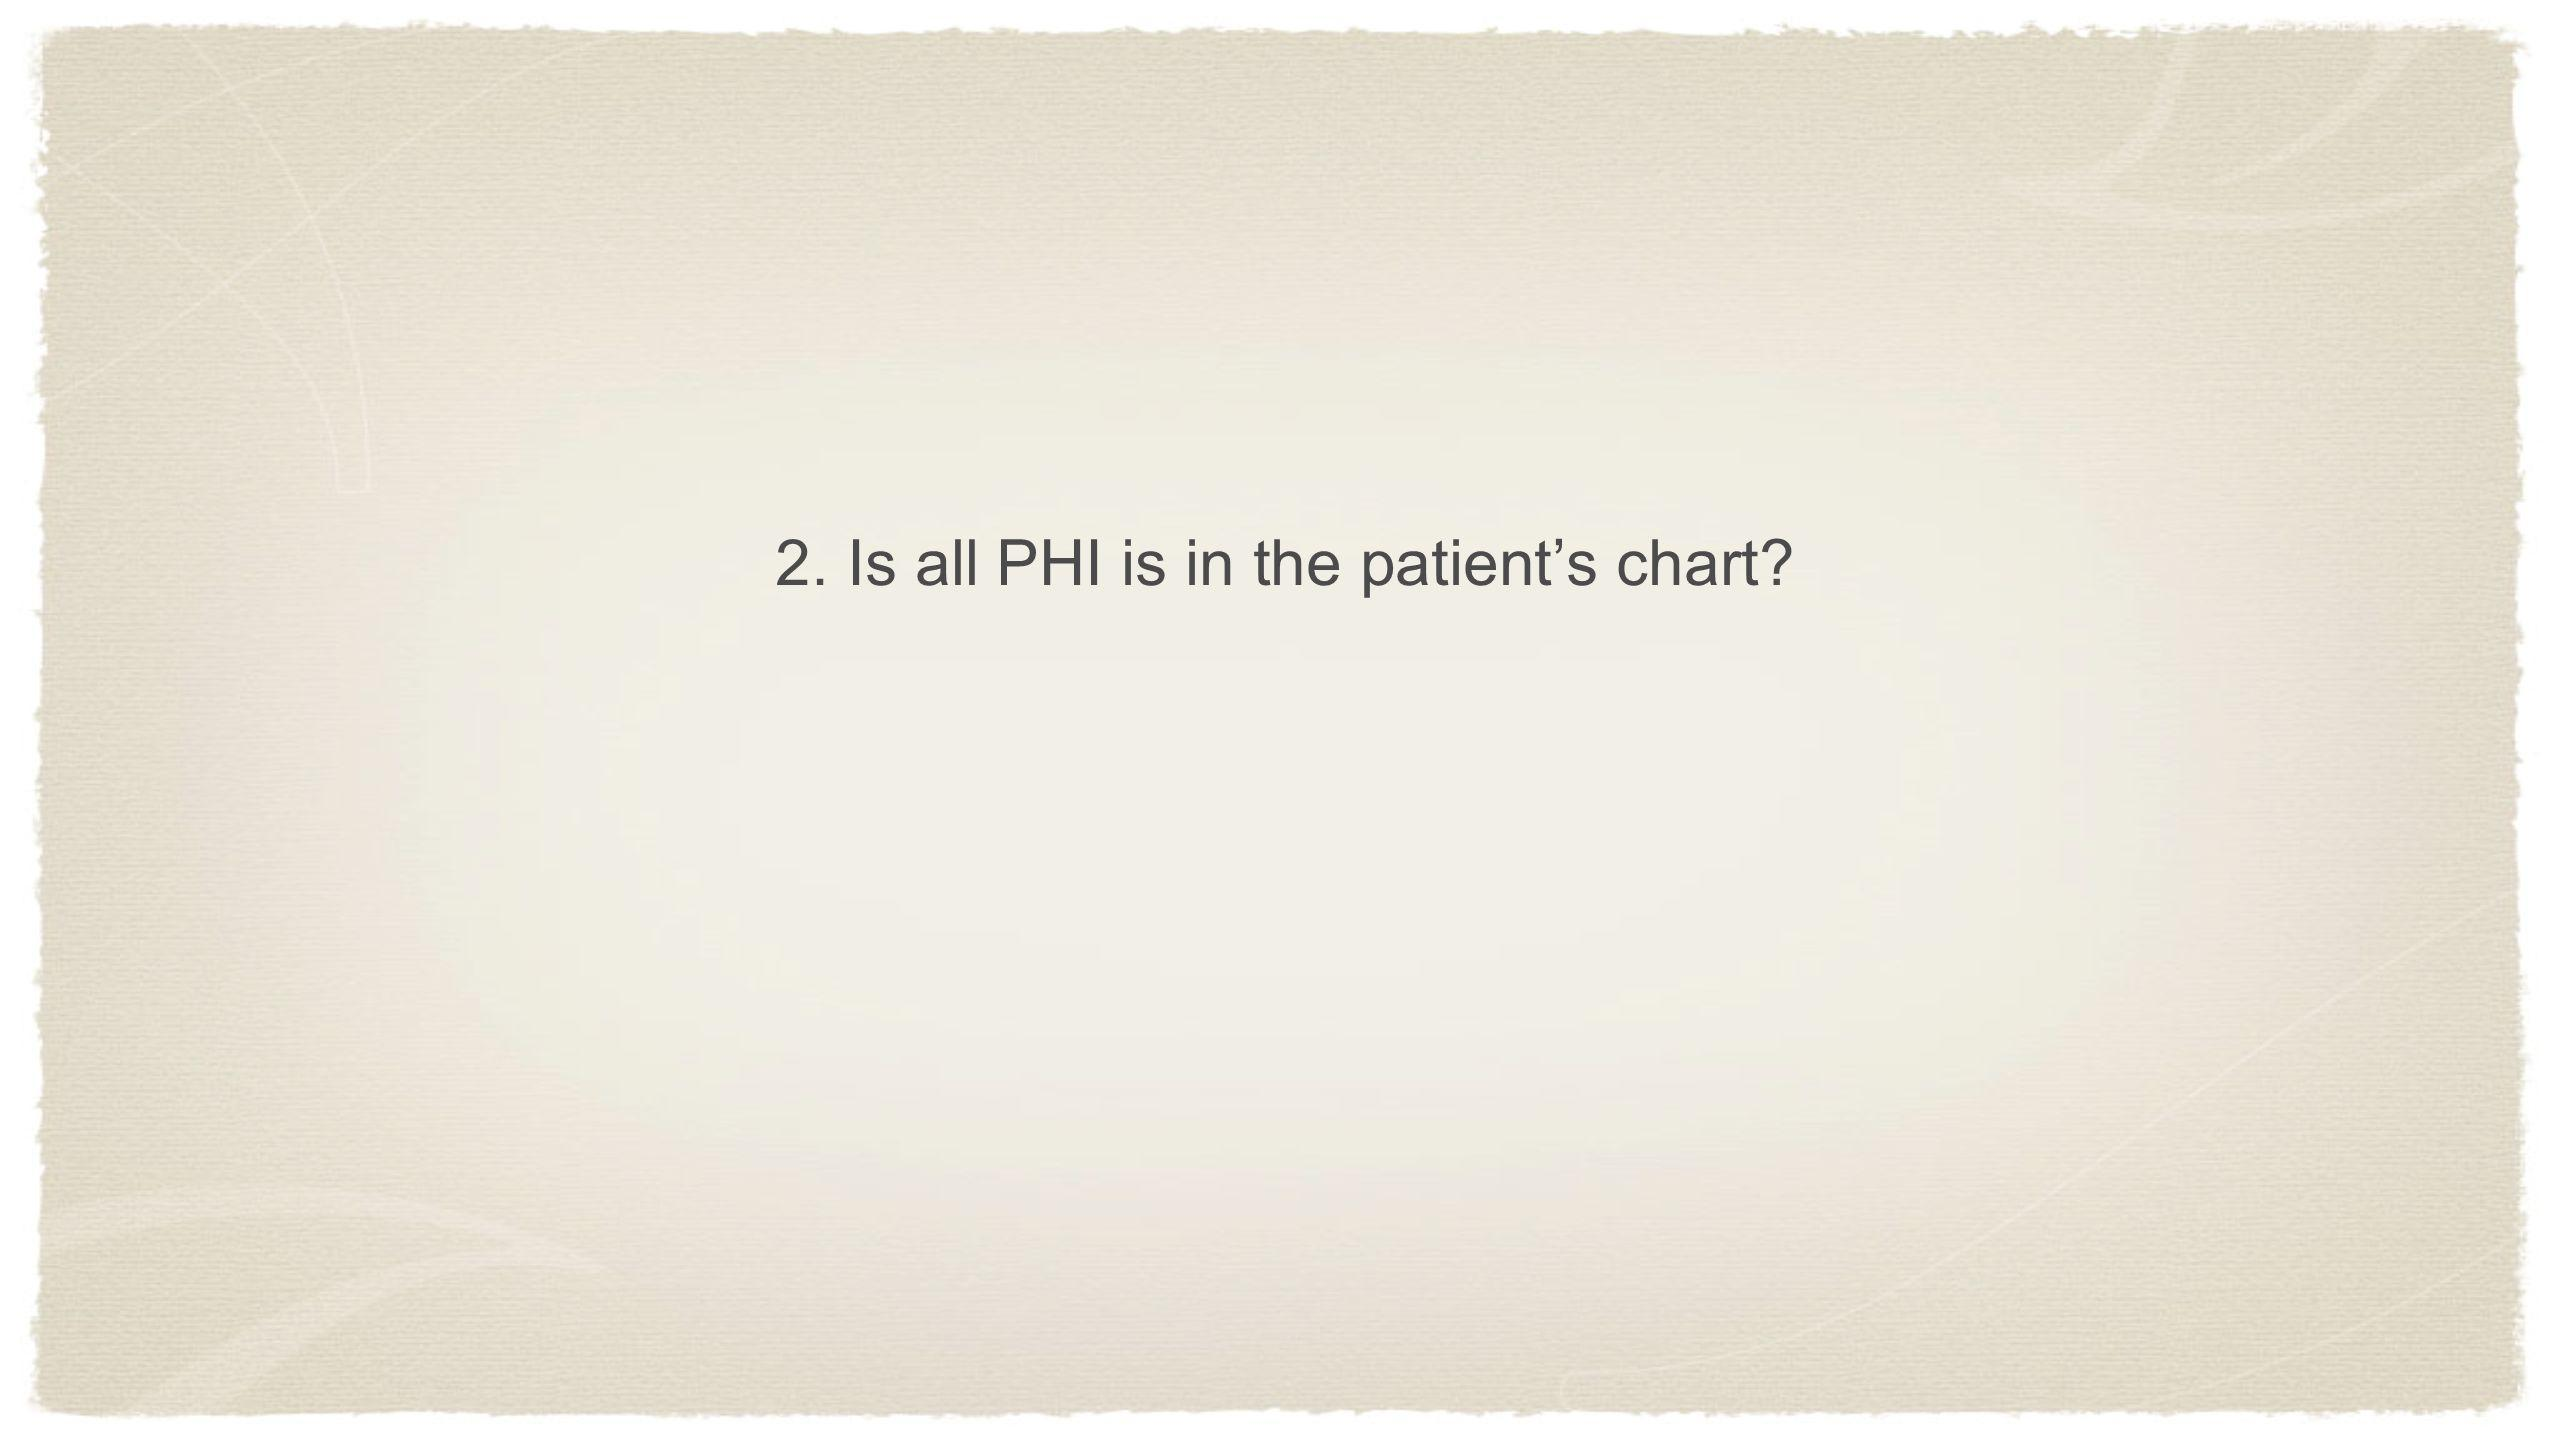 2. Is all PHI is in the patient's chart